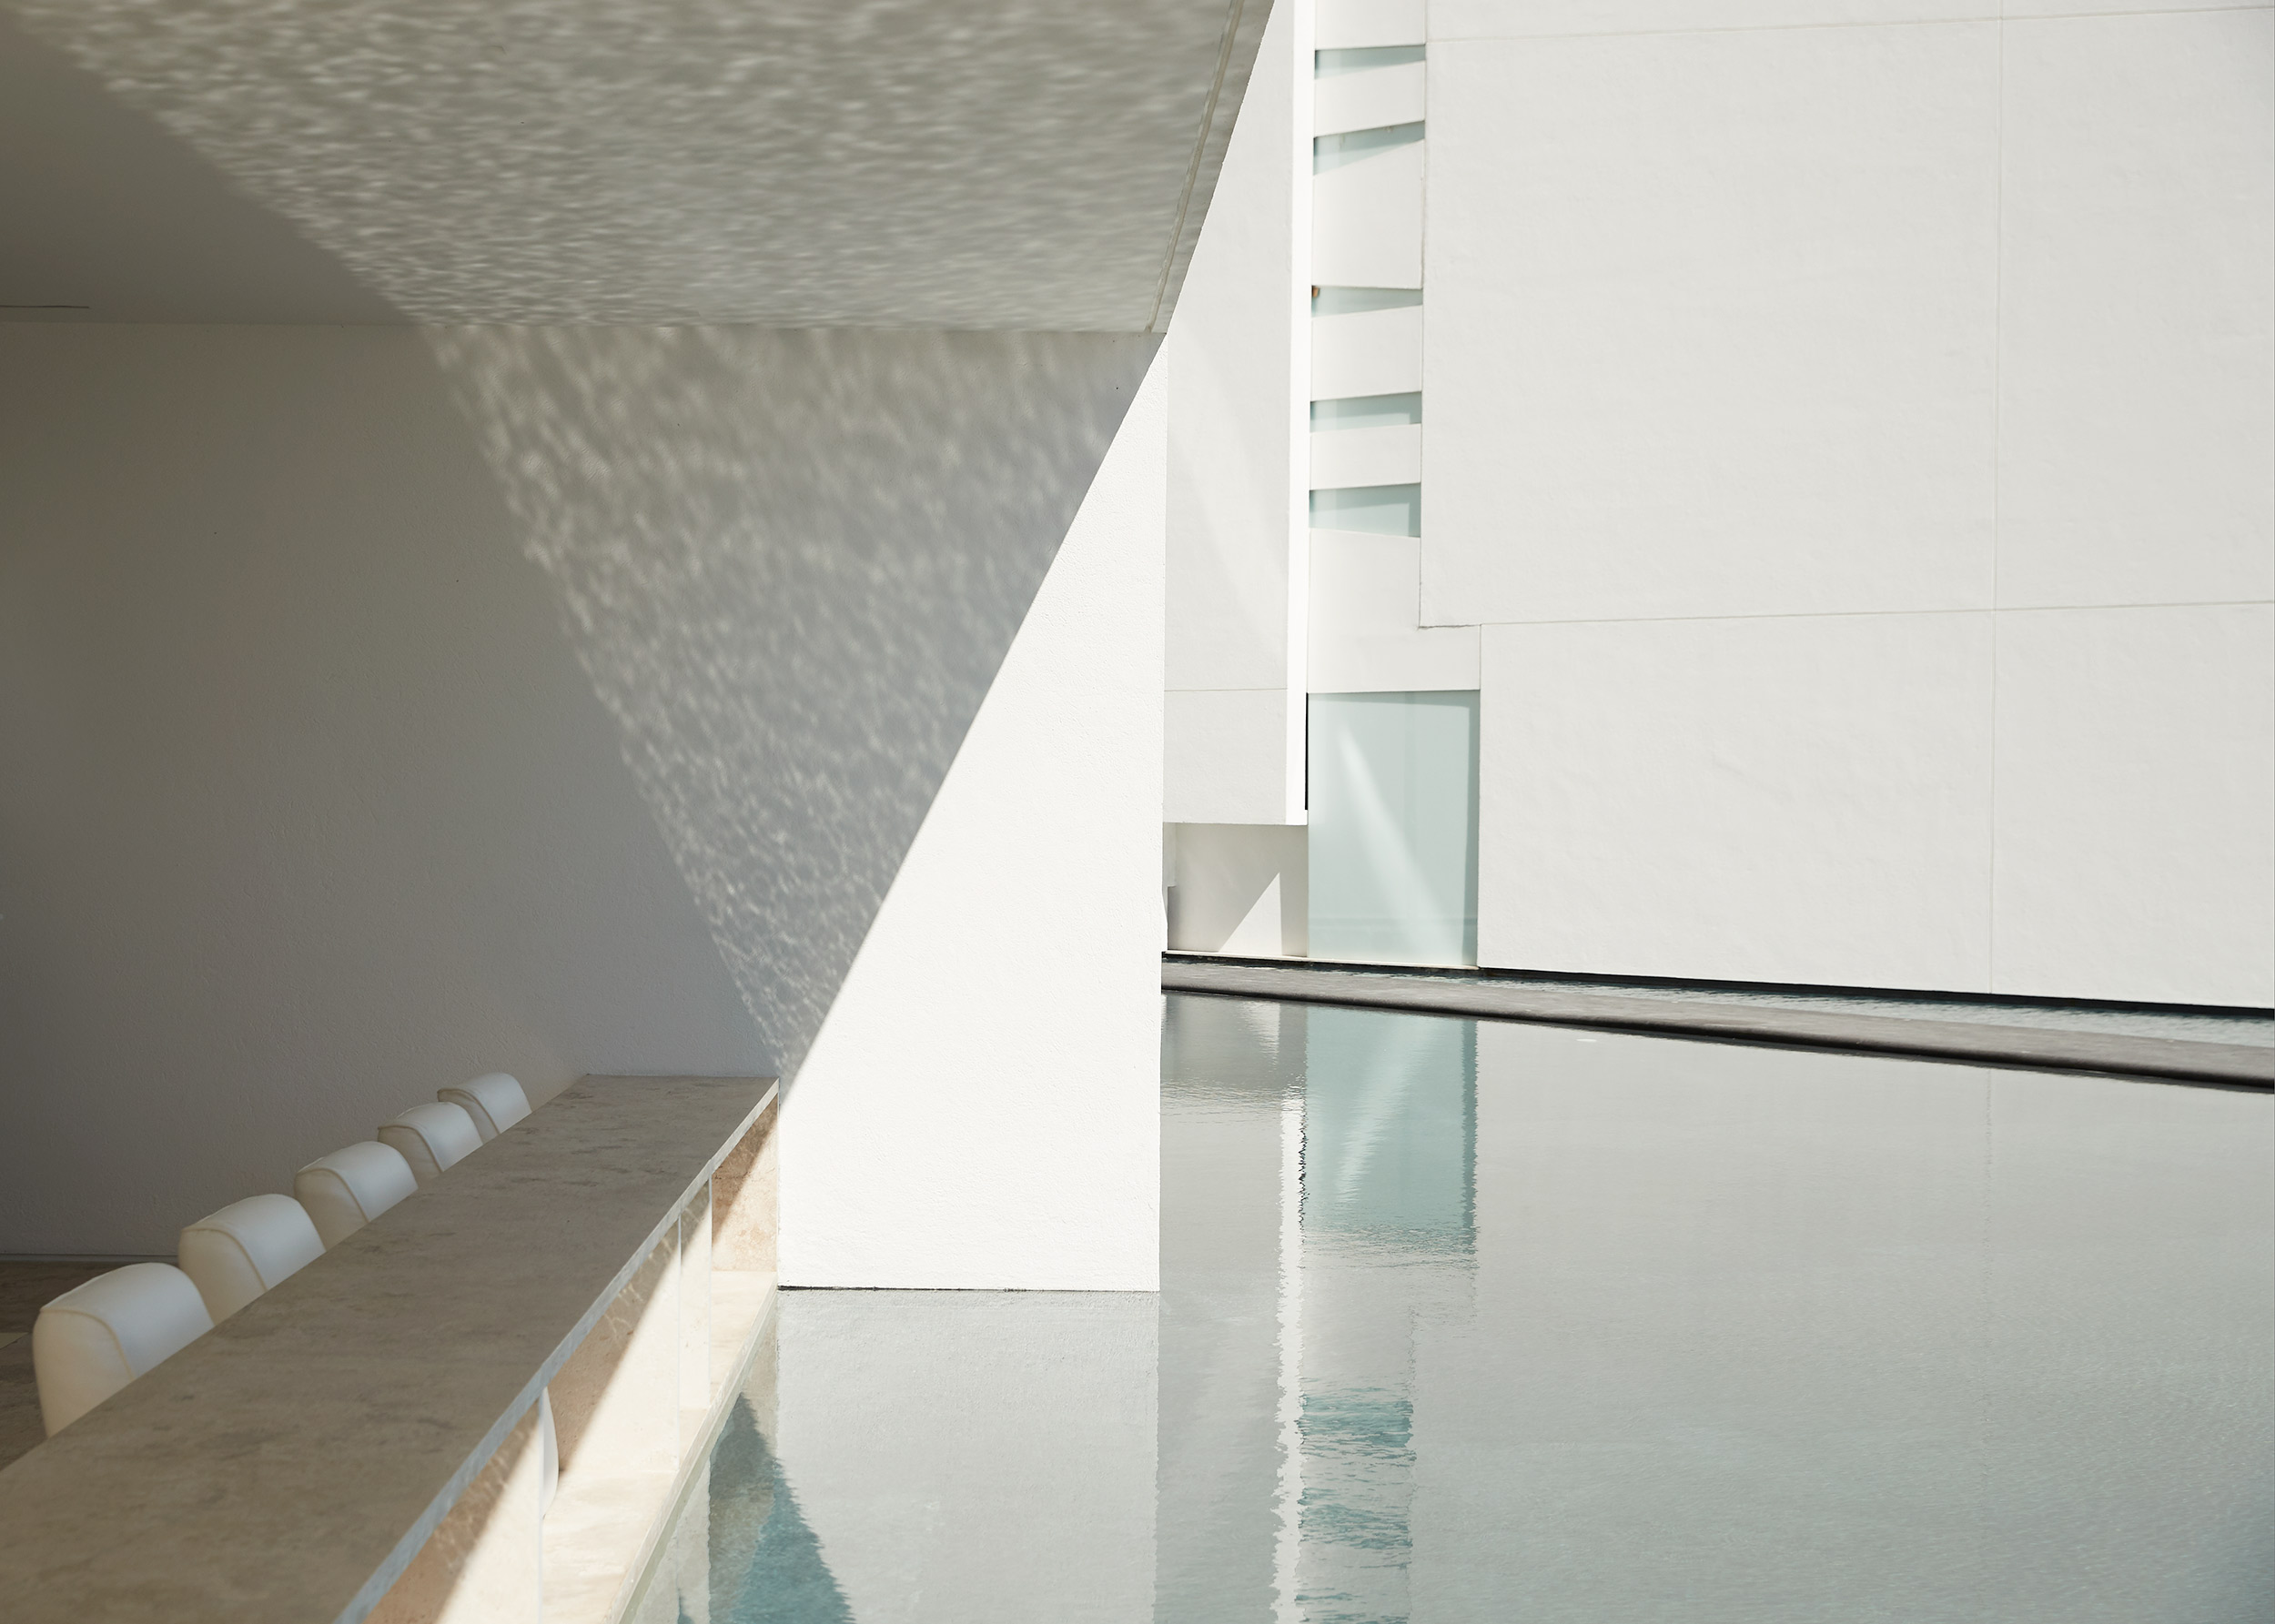 Spaces: Mar Adentro